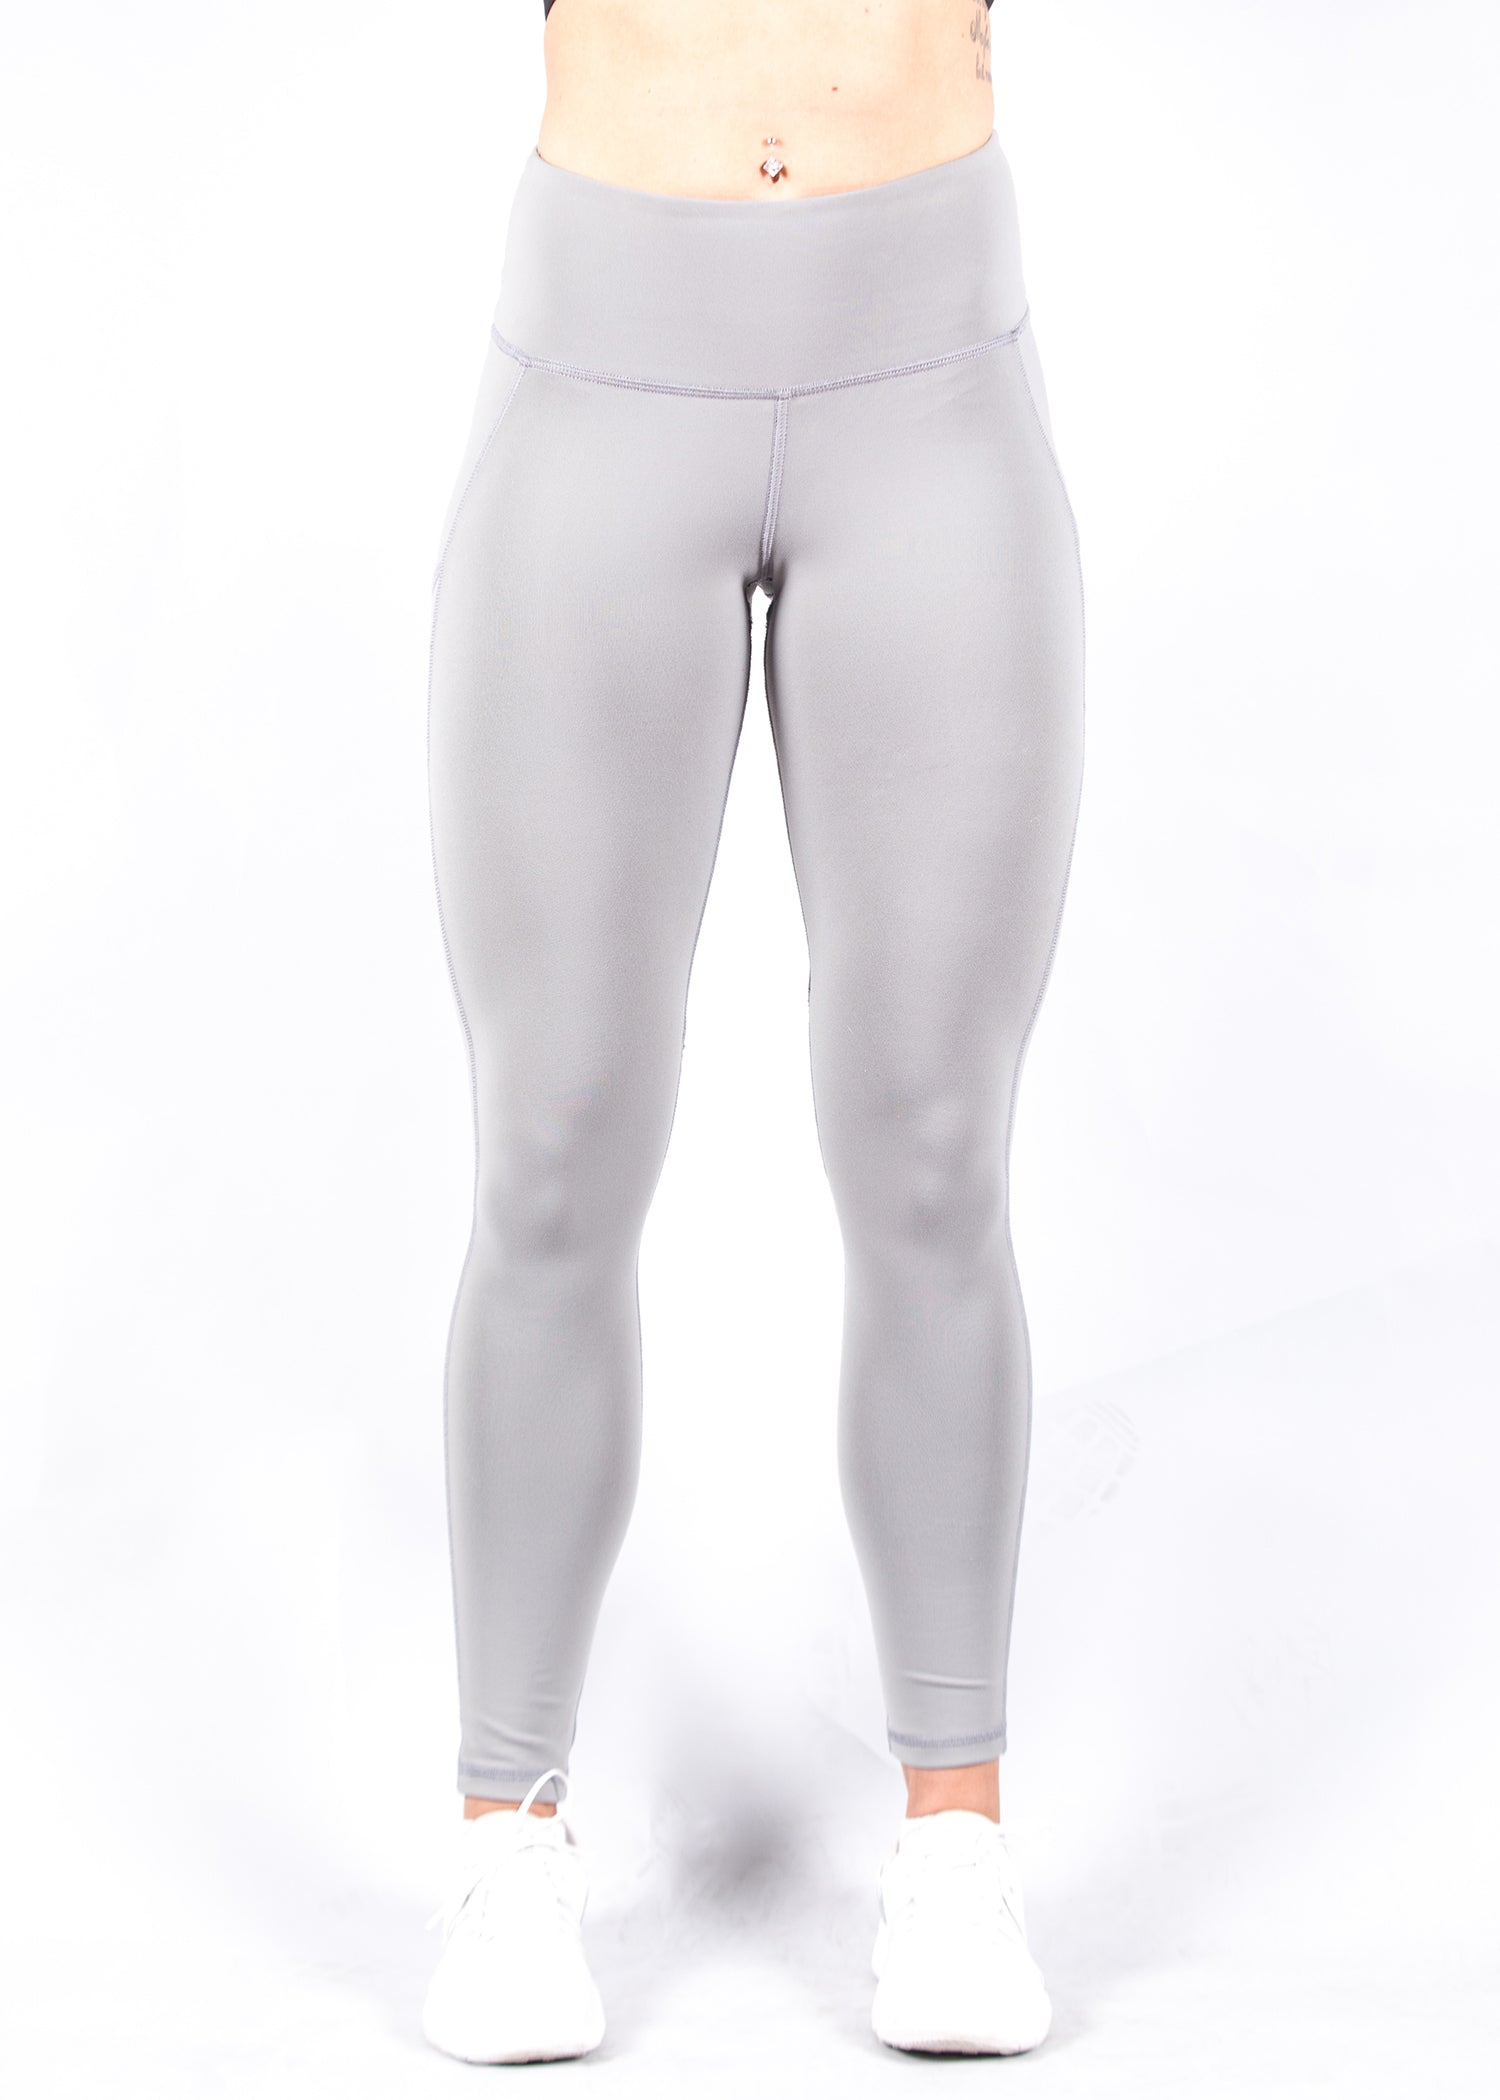 Heartcore Silver Side Pocket Leggings